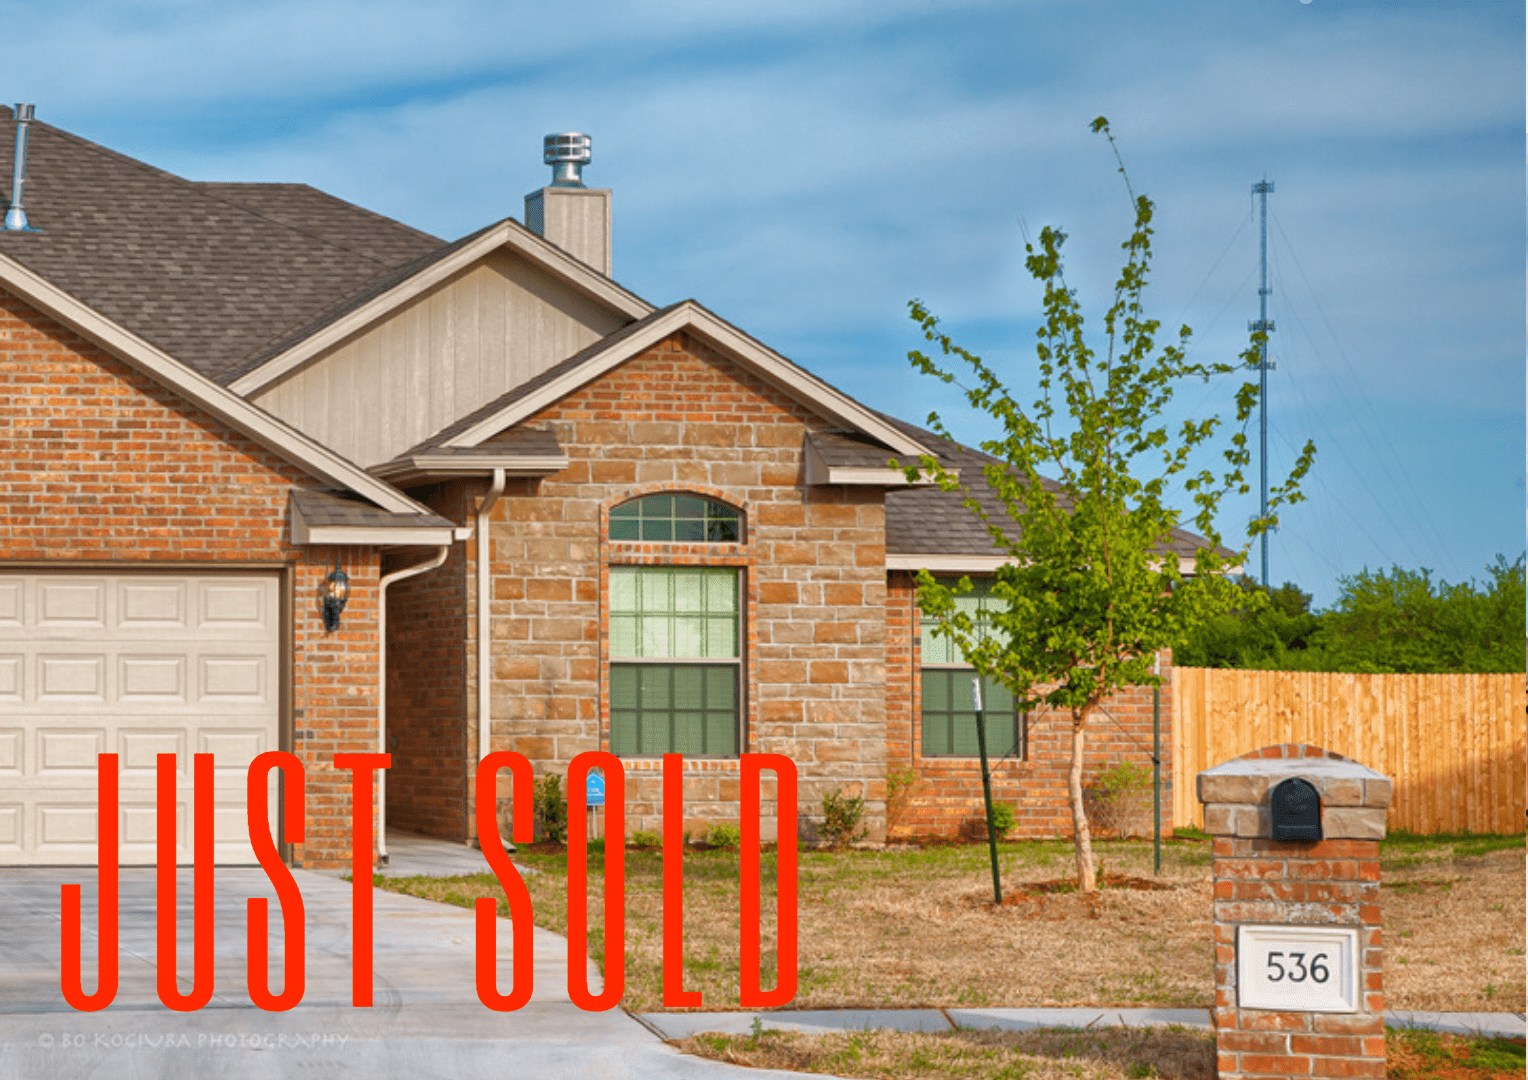 JUST SOLD - 536 BIGHORN WAY